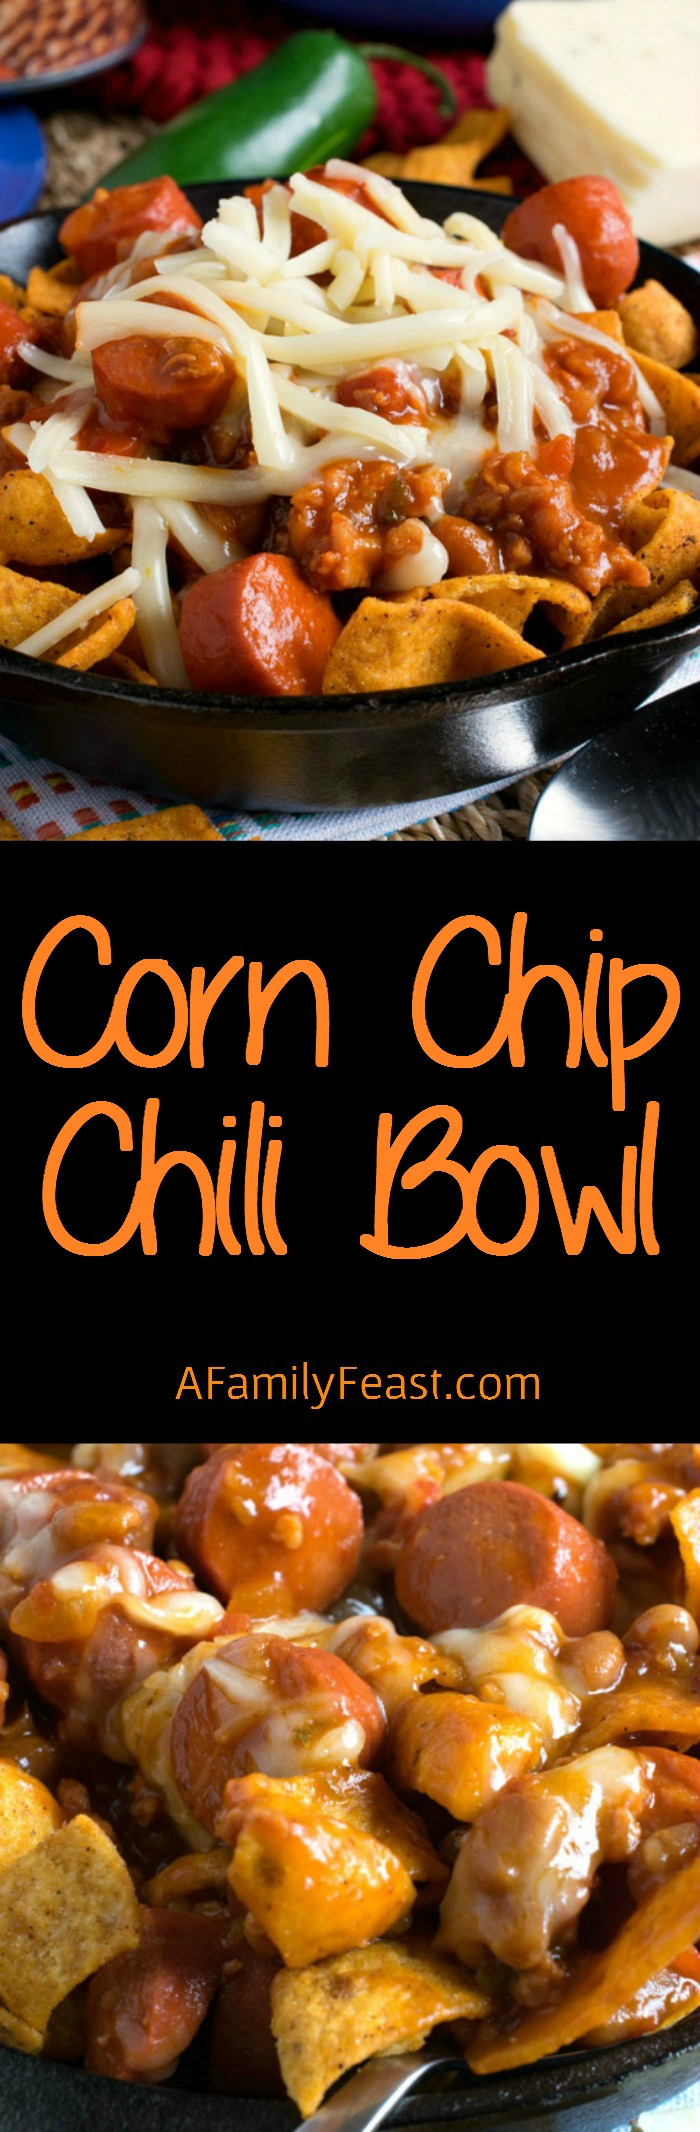 Corn Chip Chili Bowl - Great game day grub! Corn chips topped with chili. So good!